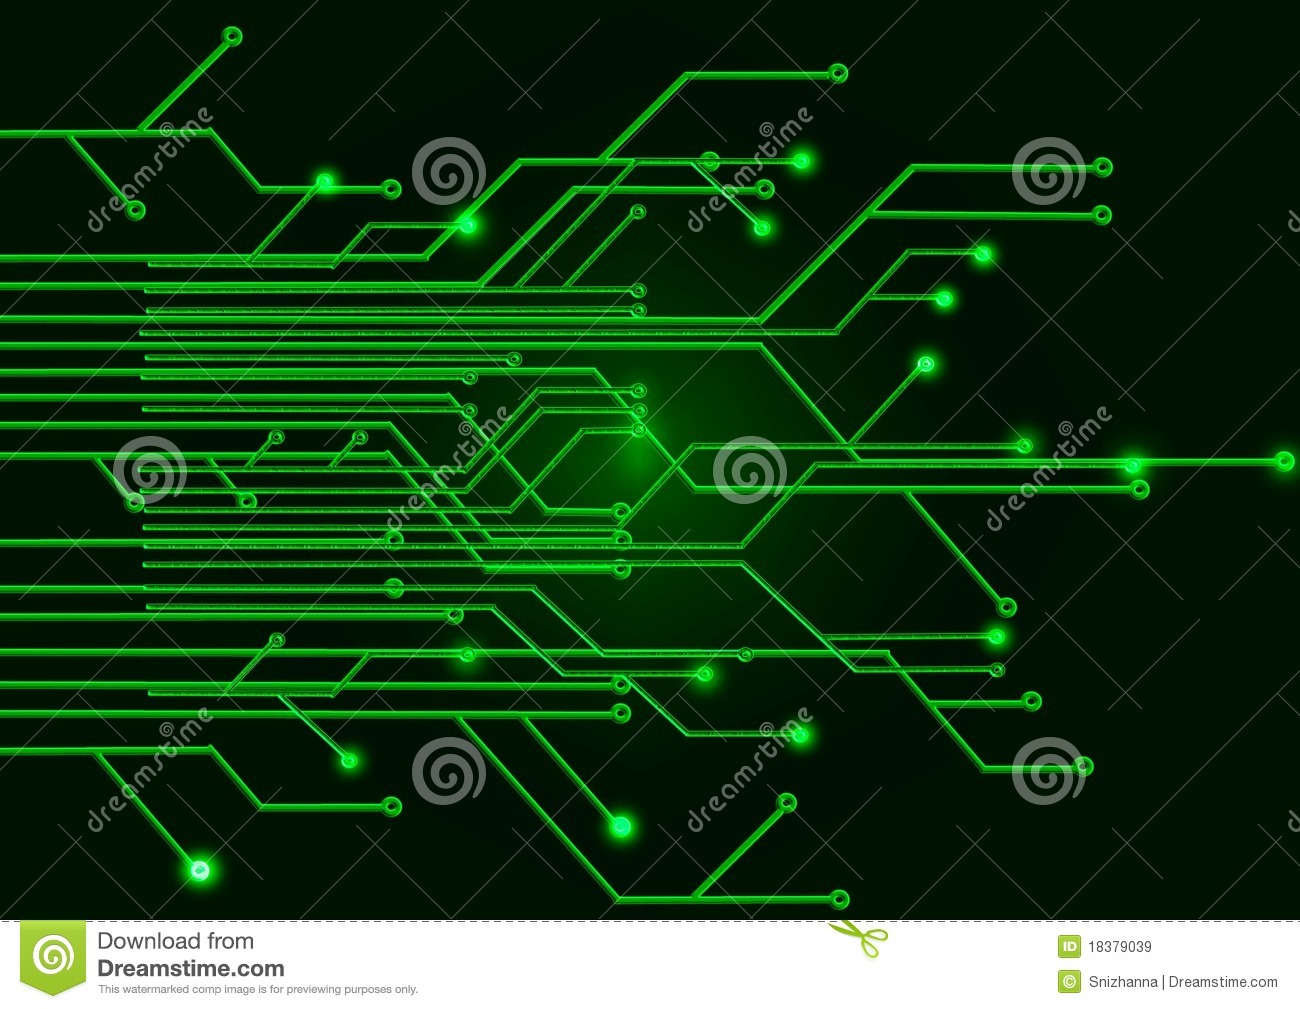 B F C B besides Chp Trenchbjt additionally Plc Trainer furthermore Schematic additionally Z Mee. on electrical circuit schematic